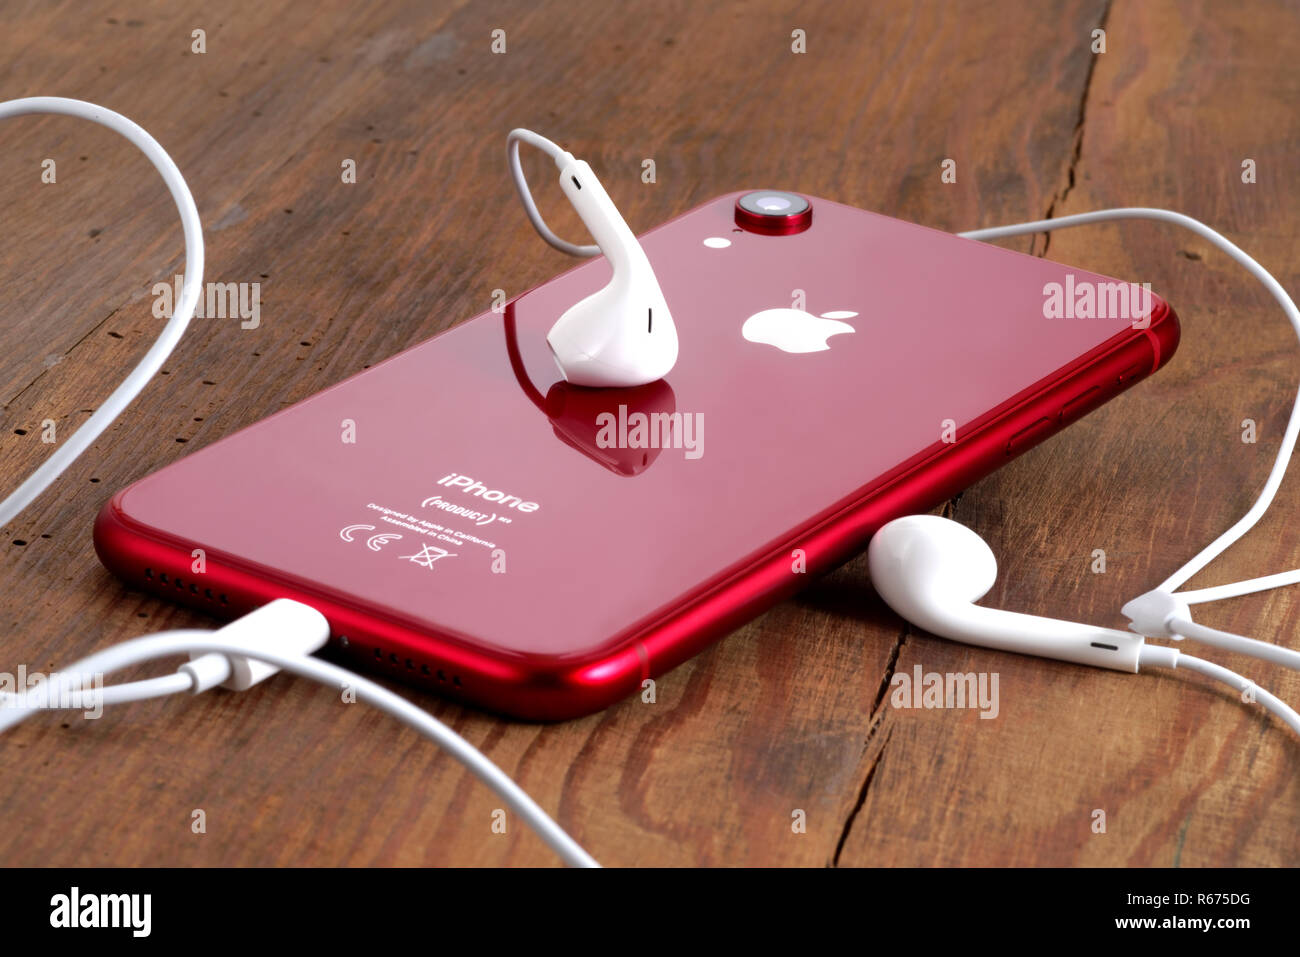 Koszalin, Poland – December 04, 2018: Red iPhone XR on a wooden table with white earphones. The iPhone XR is smart phone with multi touch screen produ - Stock Image